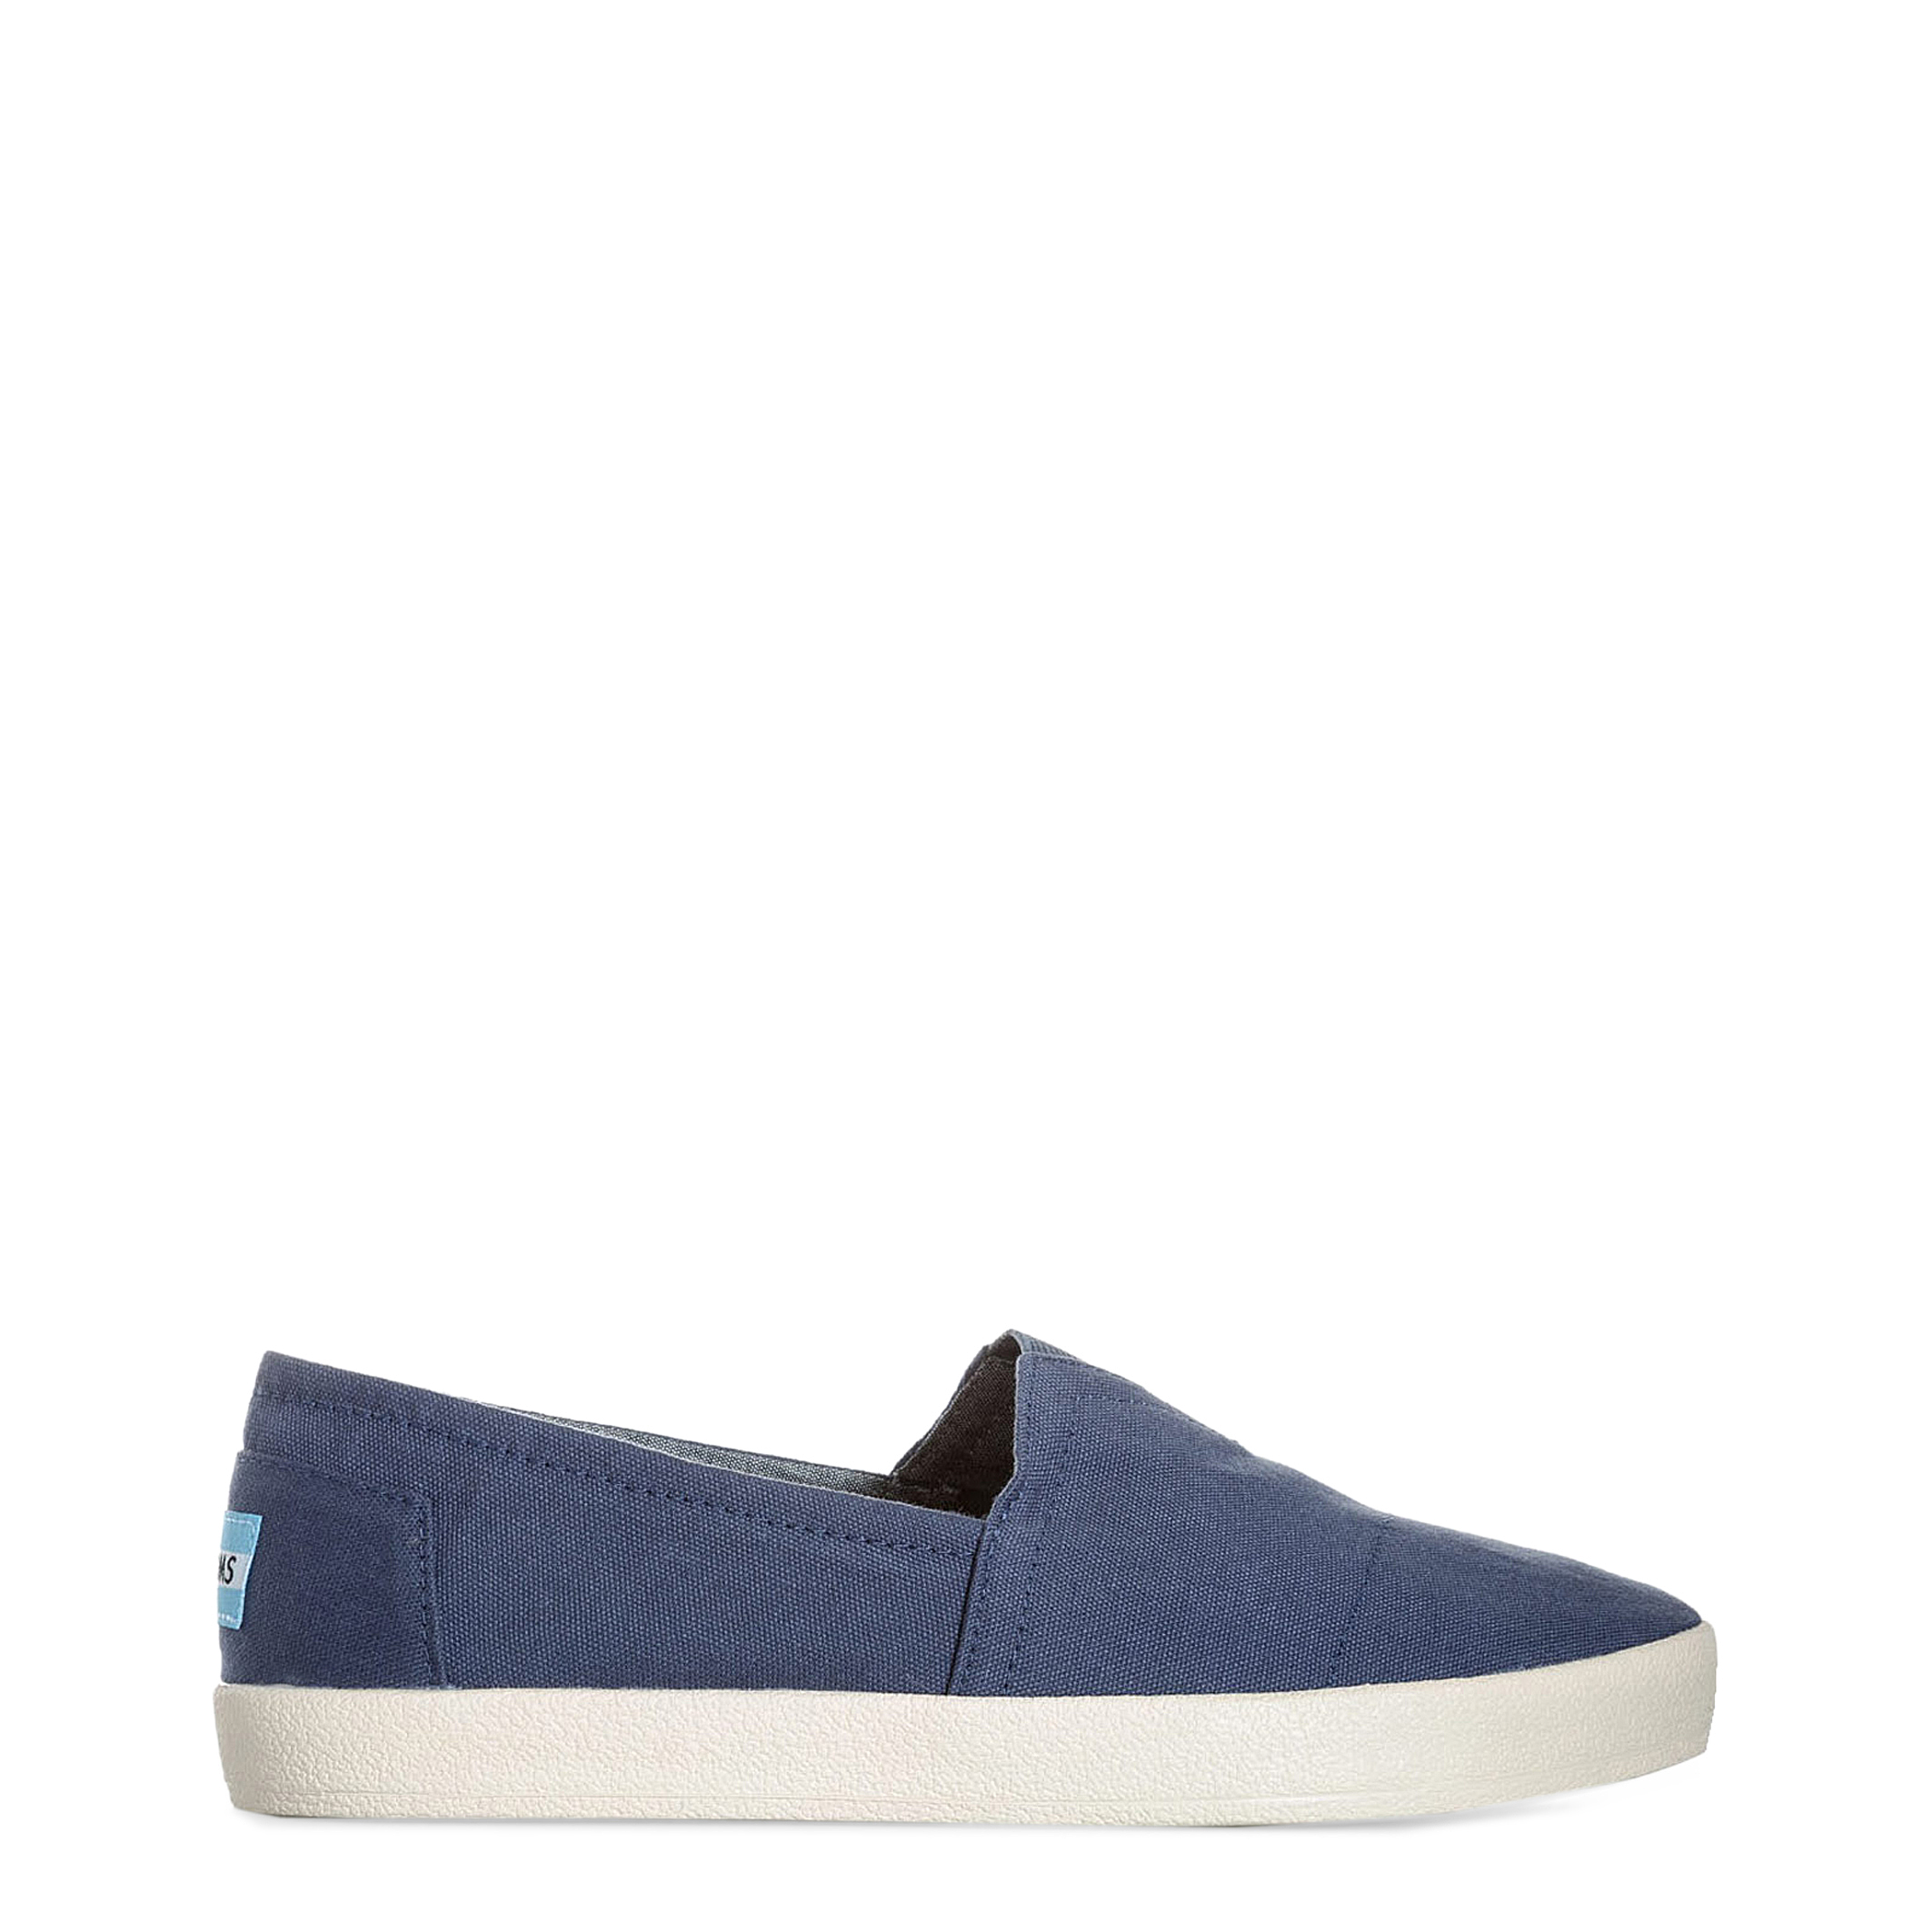 Tongs / Mules  TOMS CANVAS-NEWOS_10007052 blue